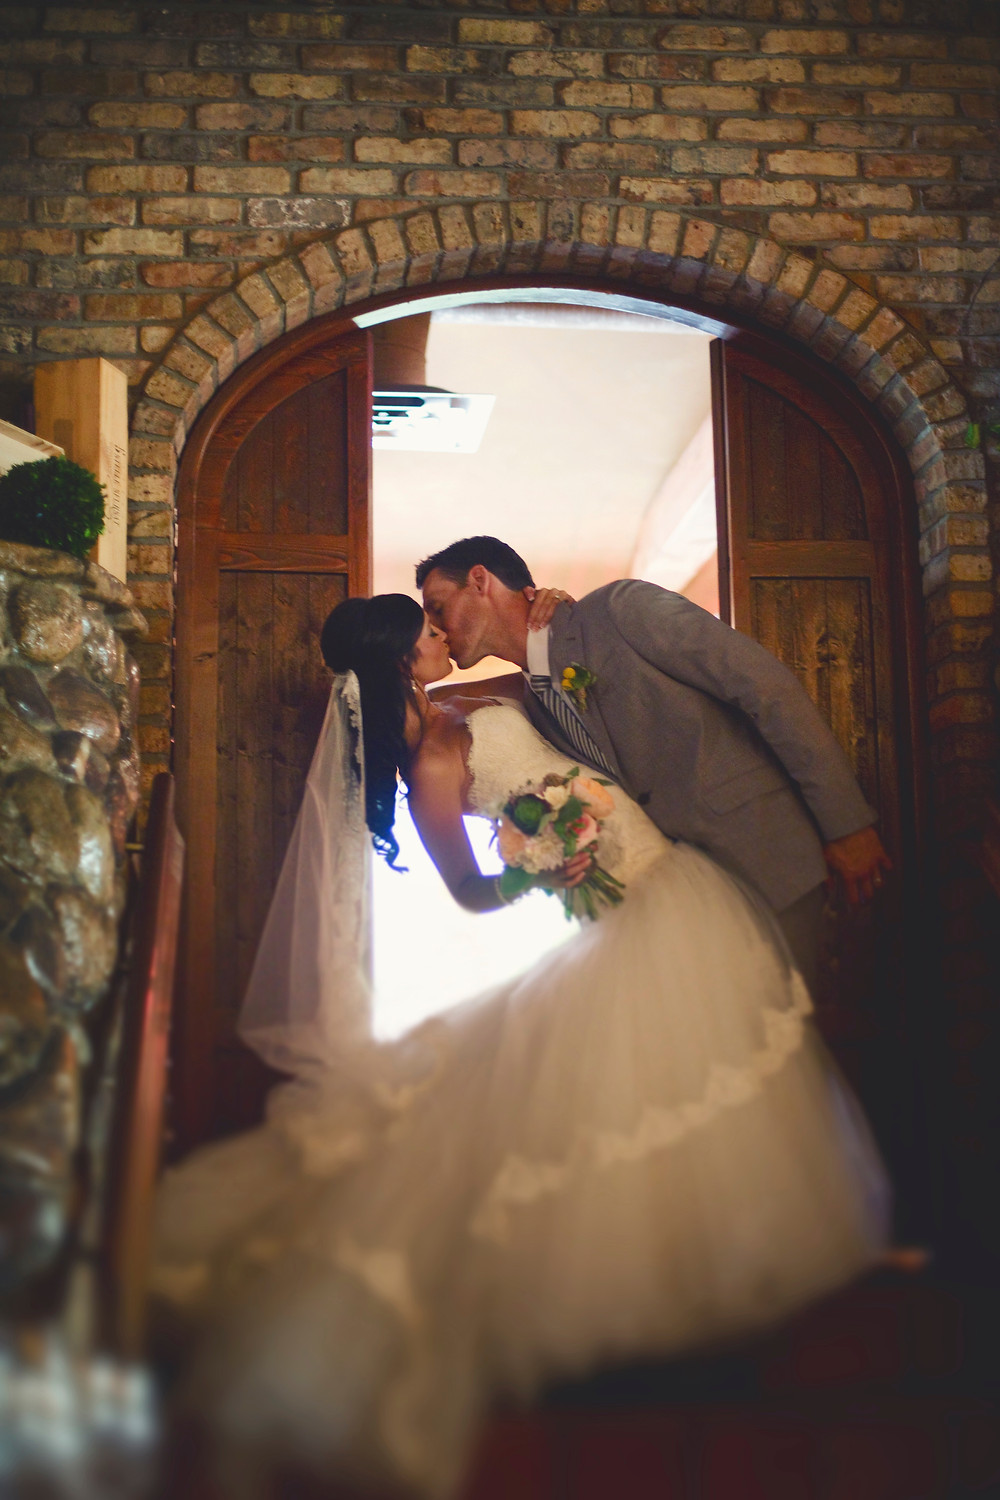 A bride in a lace and tulle Lazaro wedding dress is kissing her groom in his light grey suit beneath a brick archway in a rustic Italian restaurant.